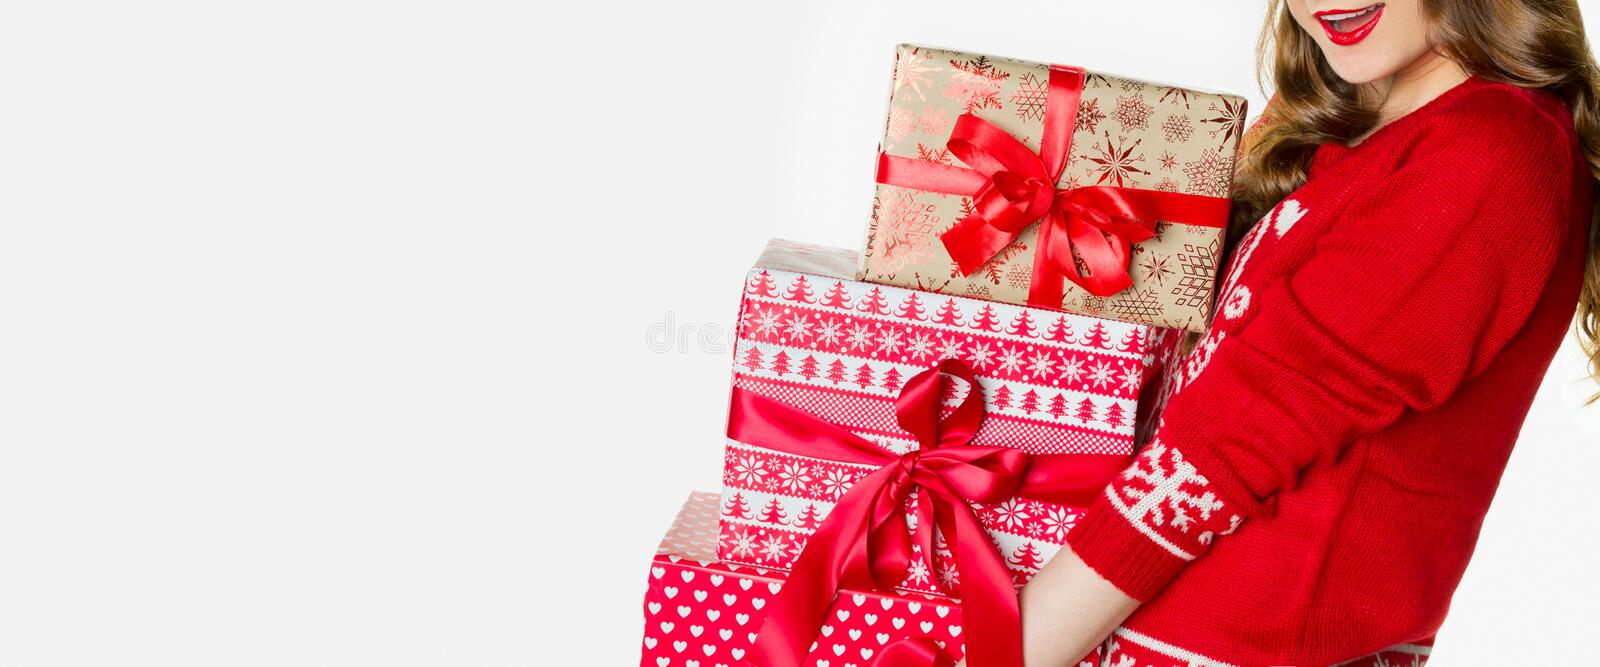 Gorgeous woman in christmas jumper holding loads of heavy xmas presents, christmas banner, isolated royalty free stock images